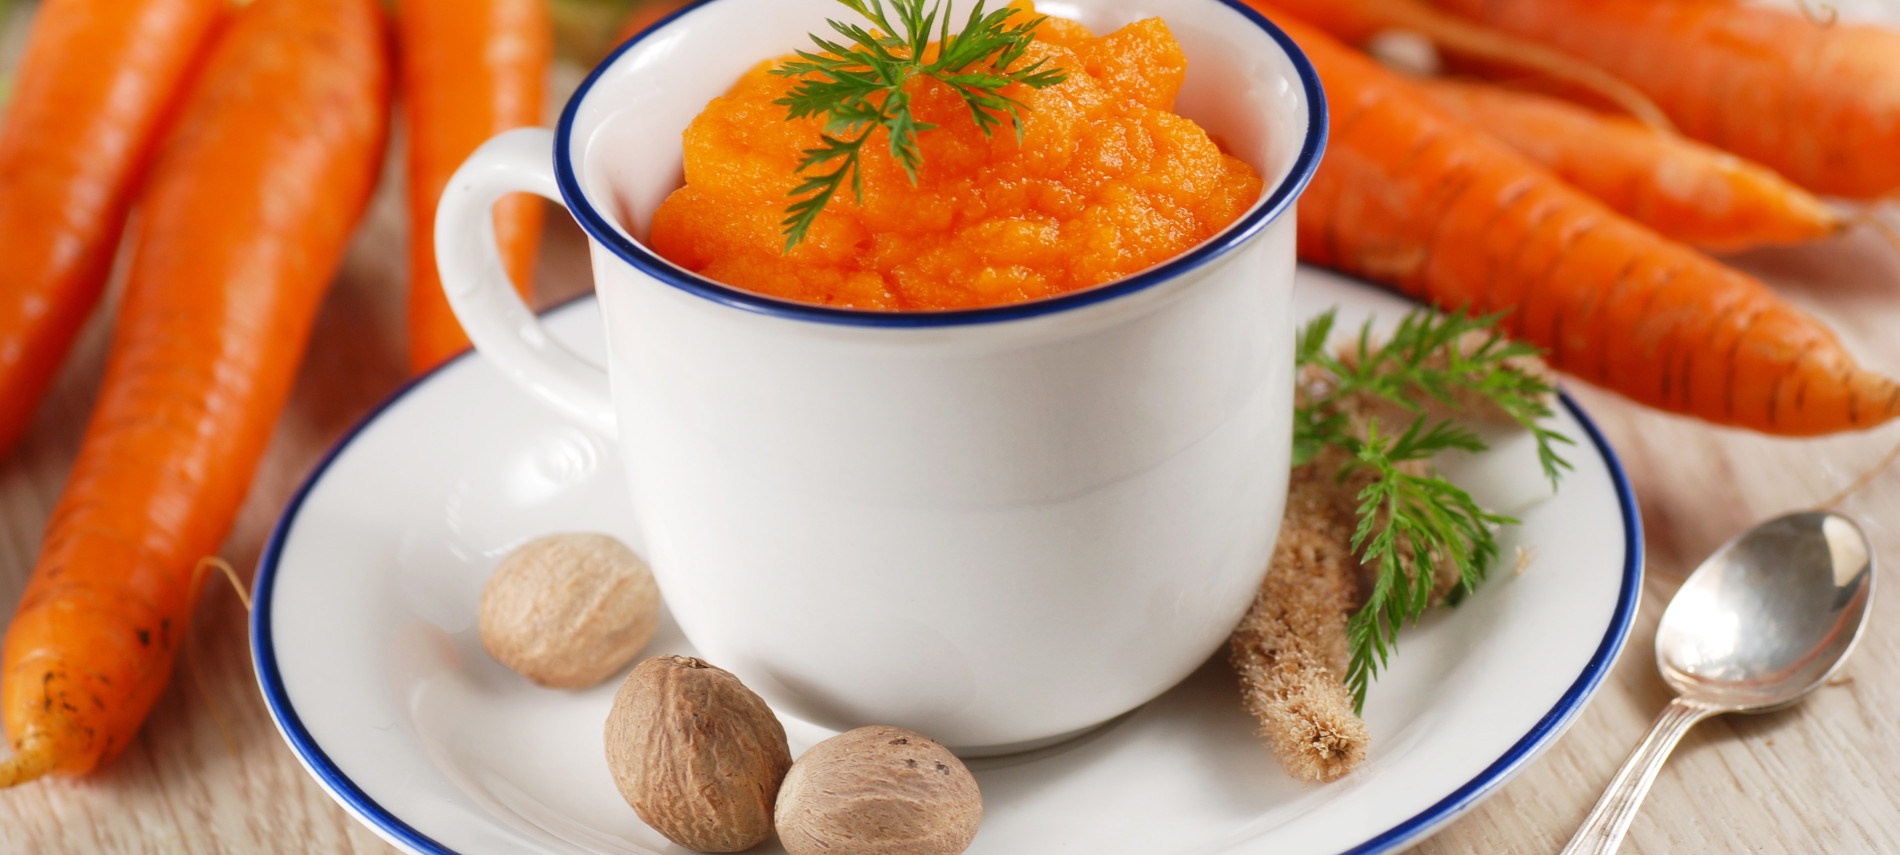 Carrot and Ginger Puree from Deerfield Inn